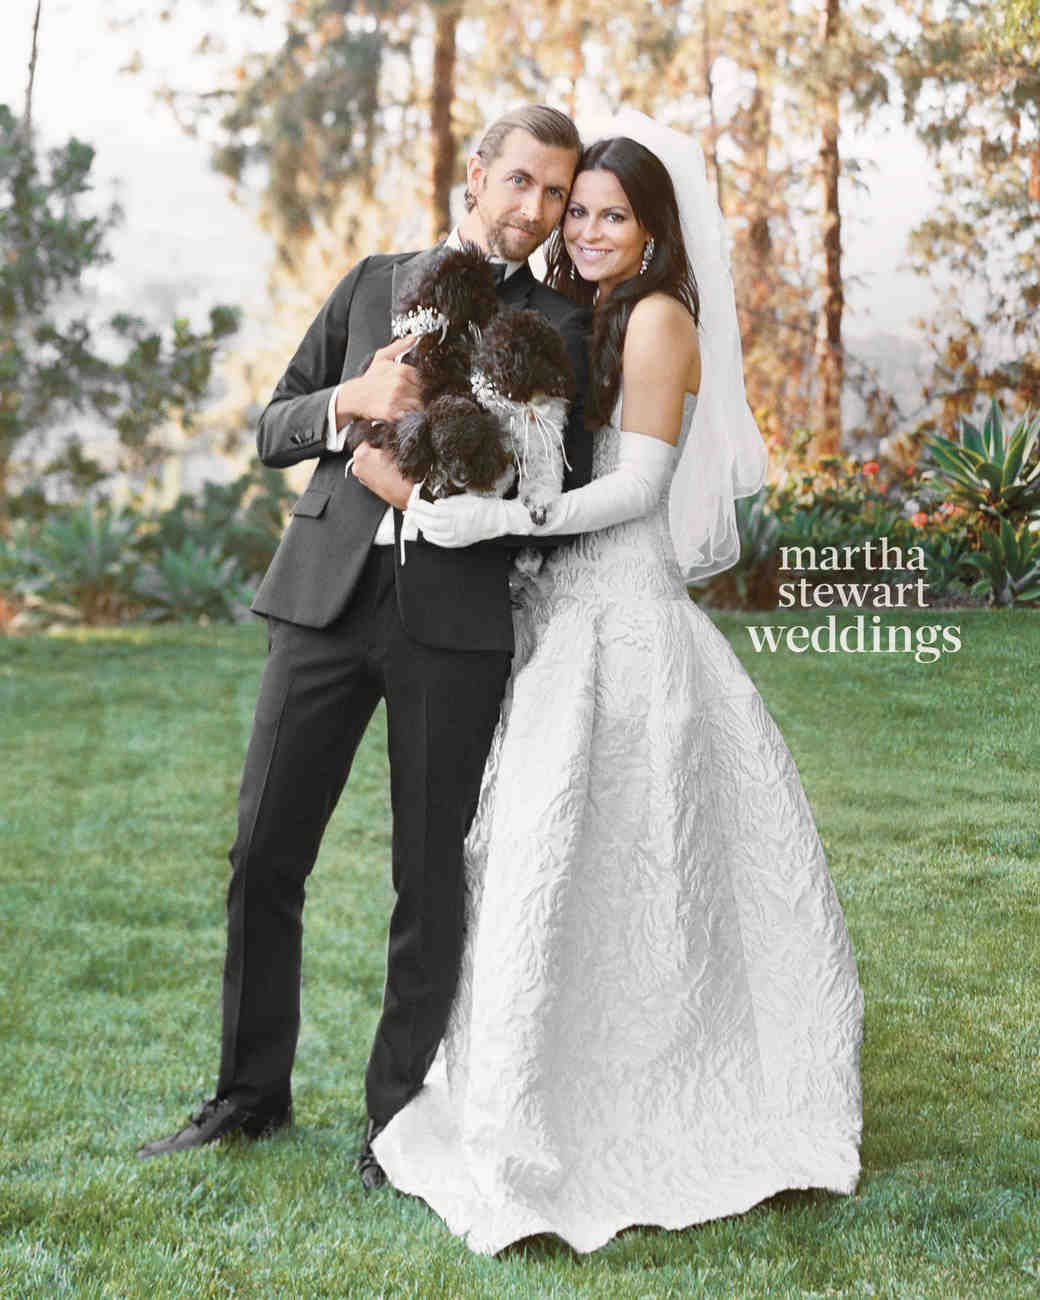 sophia-joel-wedding-los-angeles-001-d112240-r1-watermark-0815.jpg